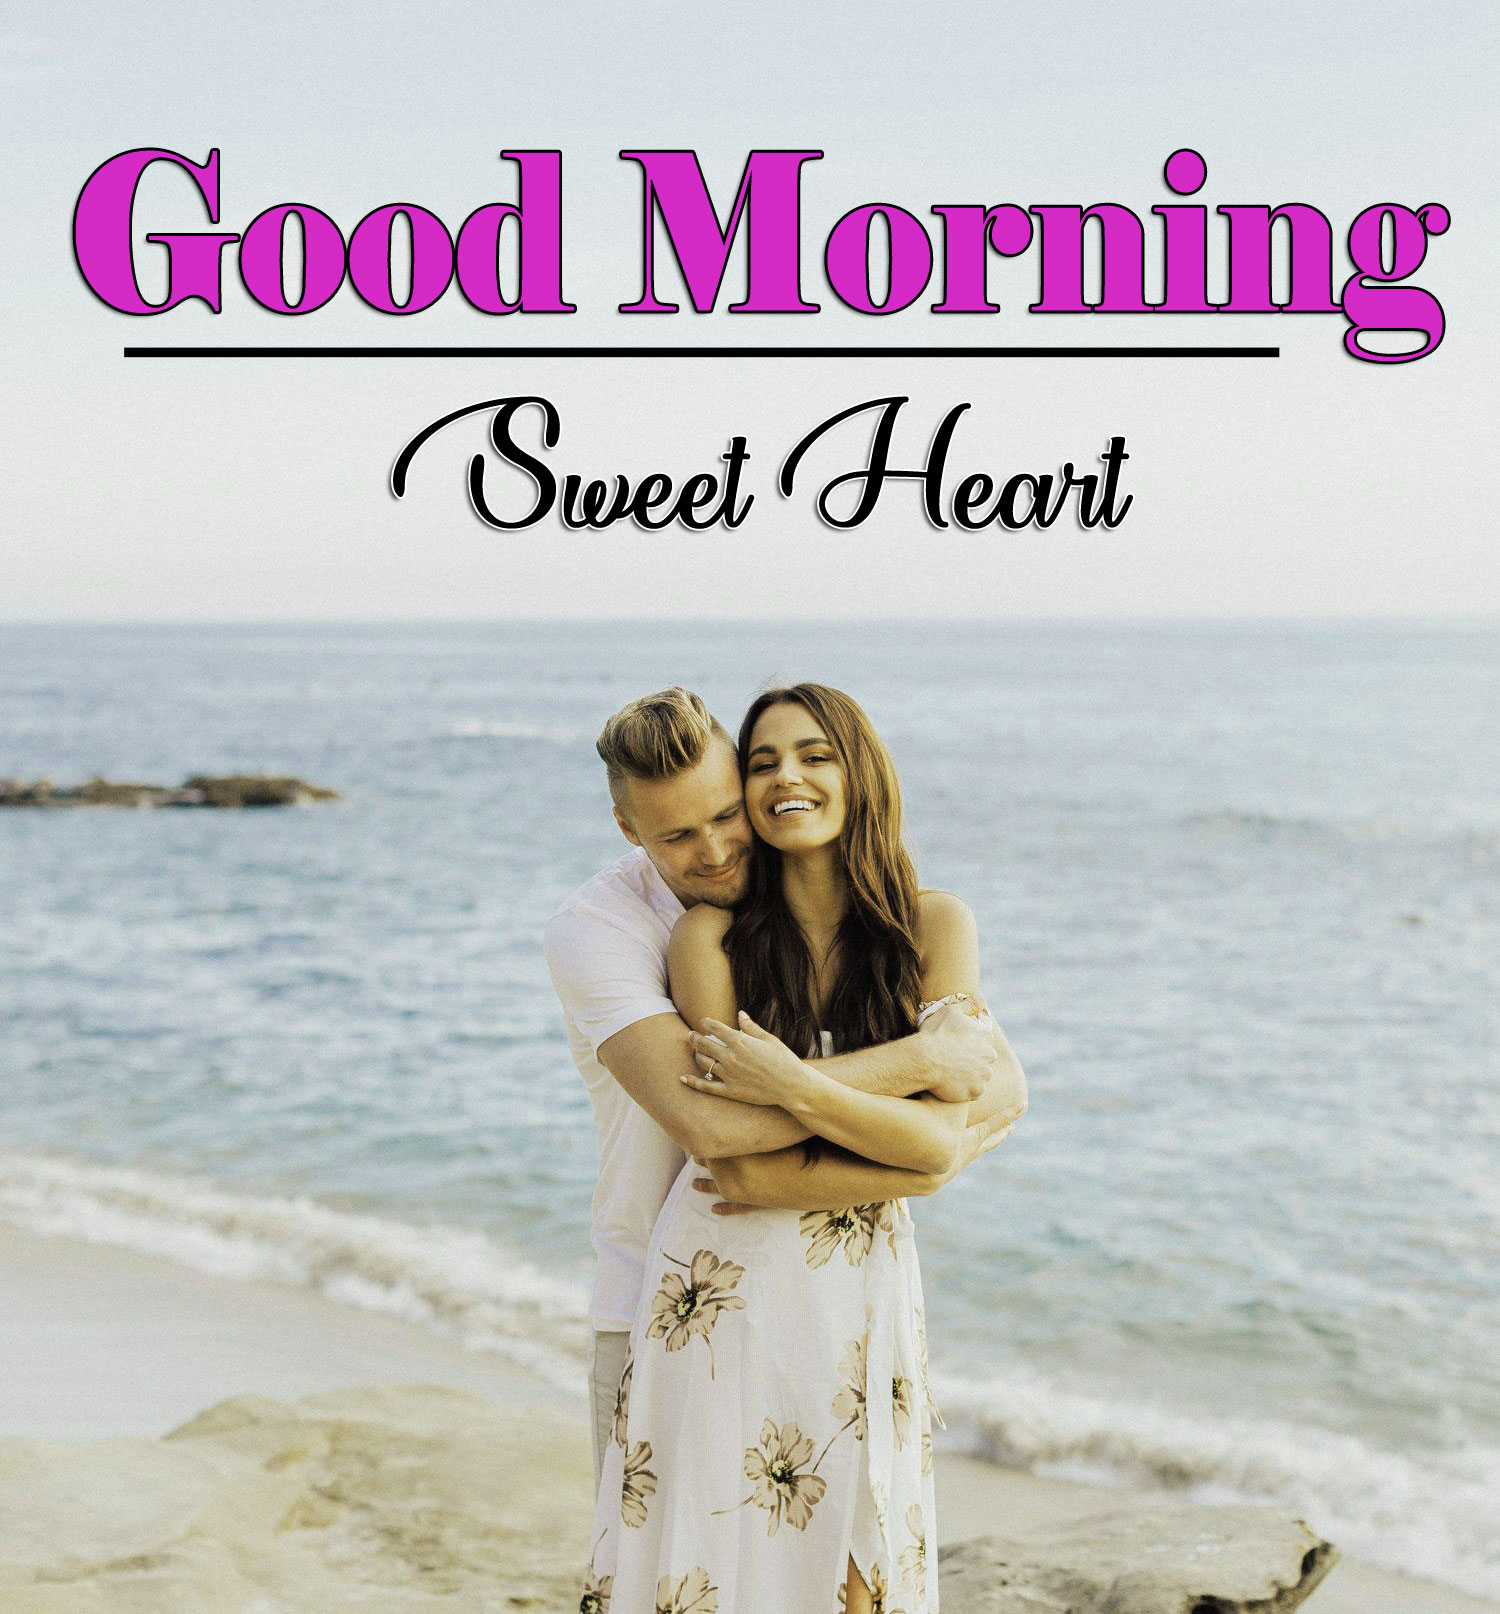 Couple Romantic Good Morning Photo Images